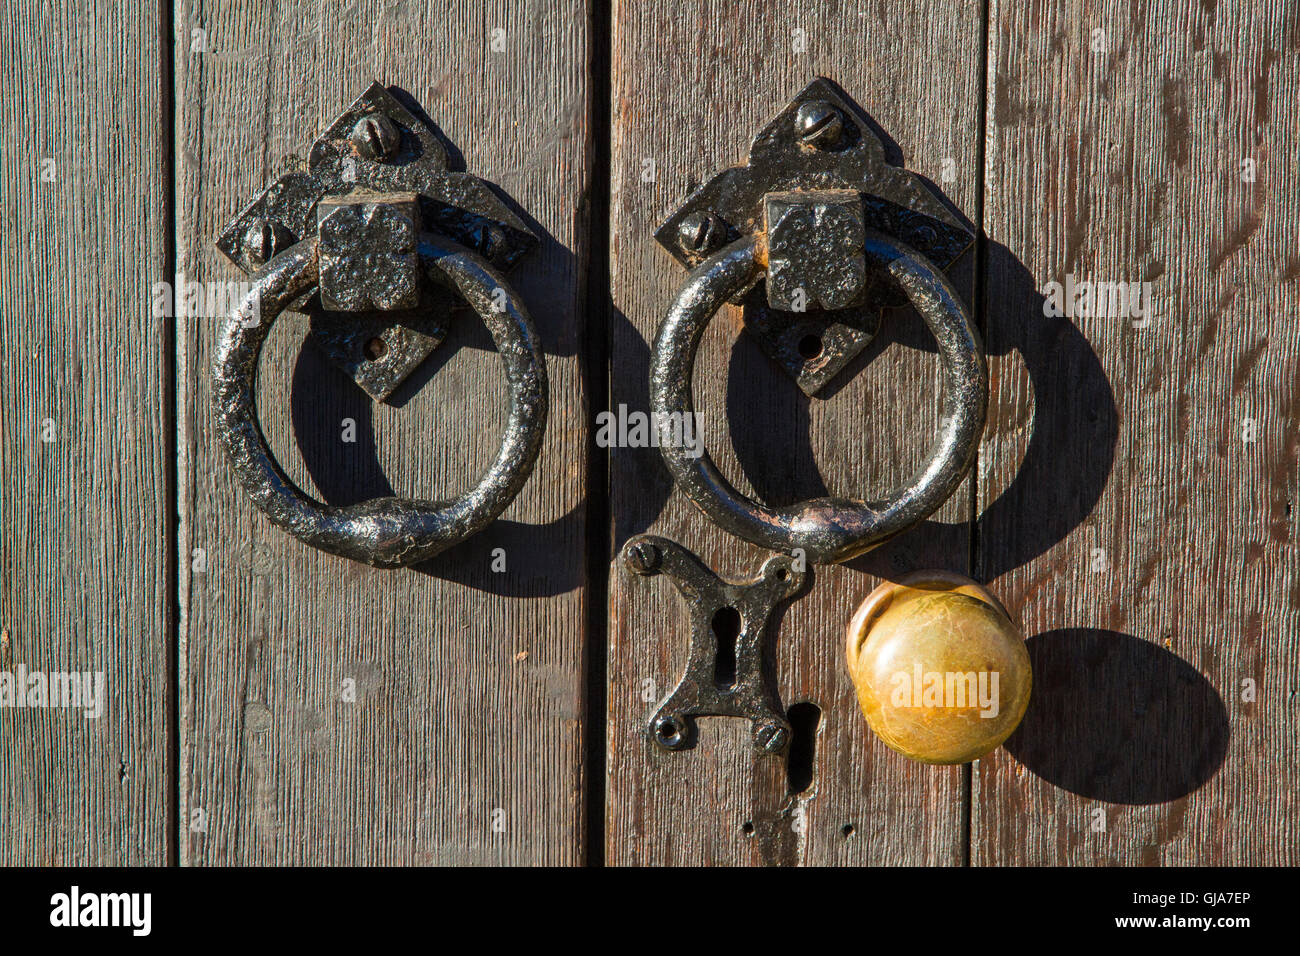 Close up of old brass doorknob and iron handles - Stock Image